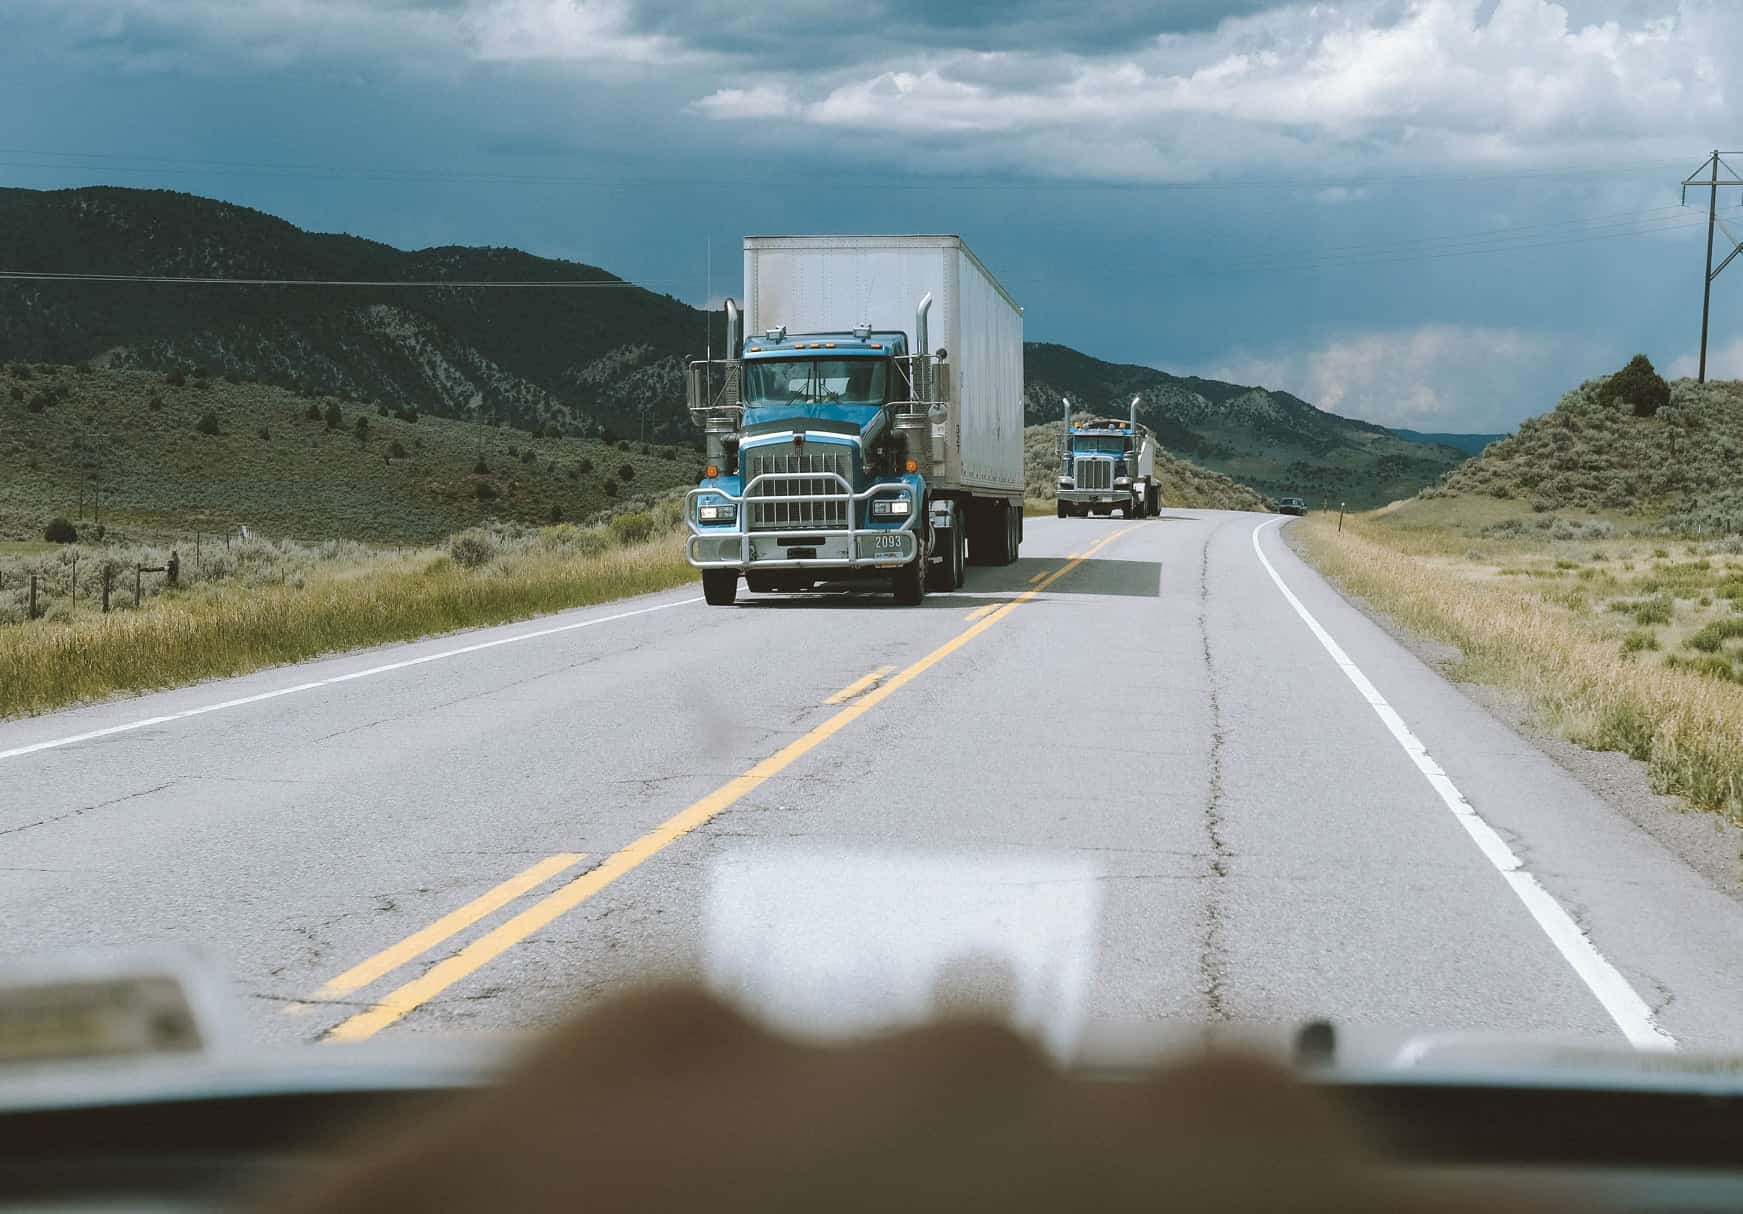 Truck-Accident-Hurt-Injured-Personal-Injury-Pain-Suffering-Hospital-Car-Accident-18-Wheeler-Commercial-Damage-Broken-Bruise-Speeding